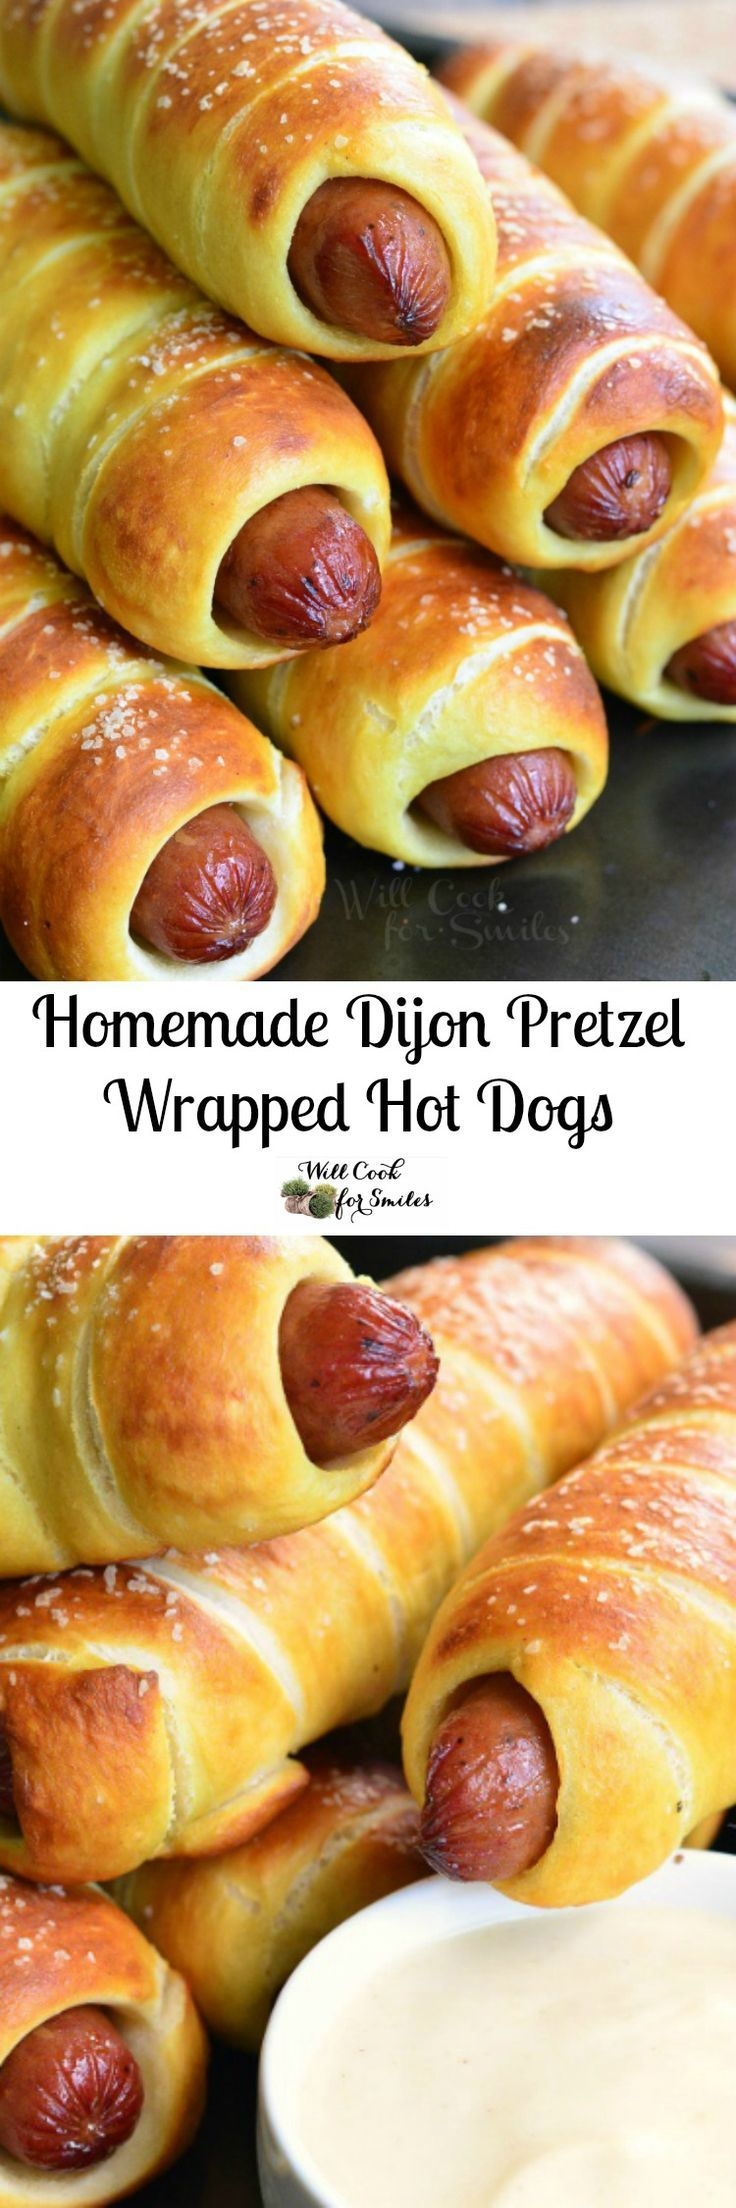 Homemade Dijon Pretzel Wrapped Hot Dogs with Maple Dijon Dipping Sauce! The BEST…